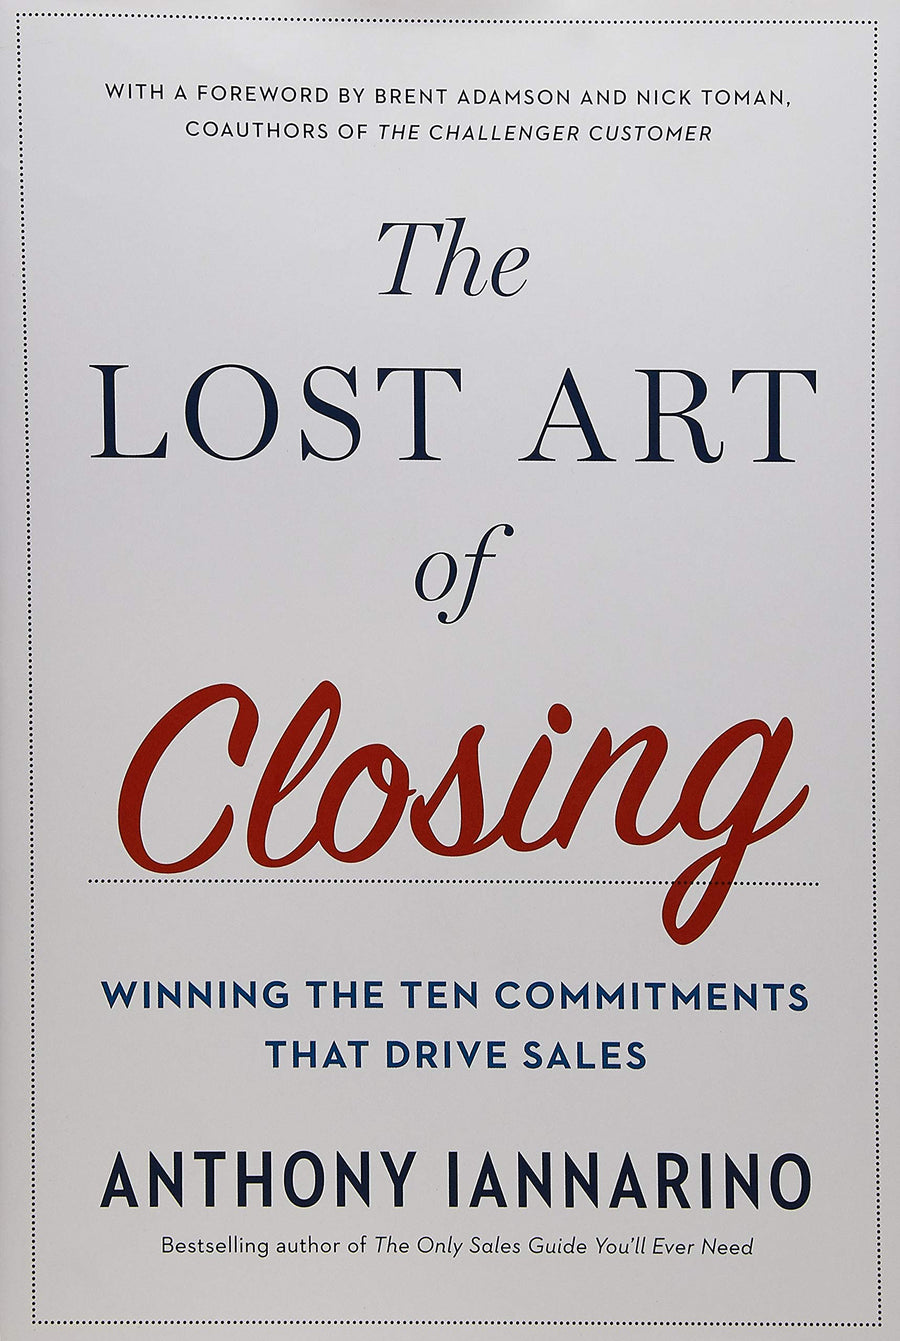 The Lost Art of Closing: Winning the Ten Commitments That Drive Sales by Anthony Iannarino